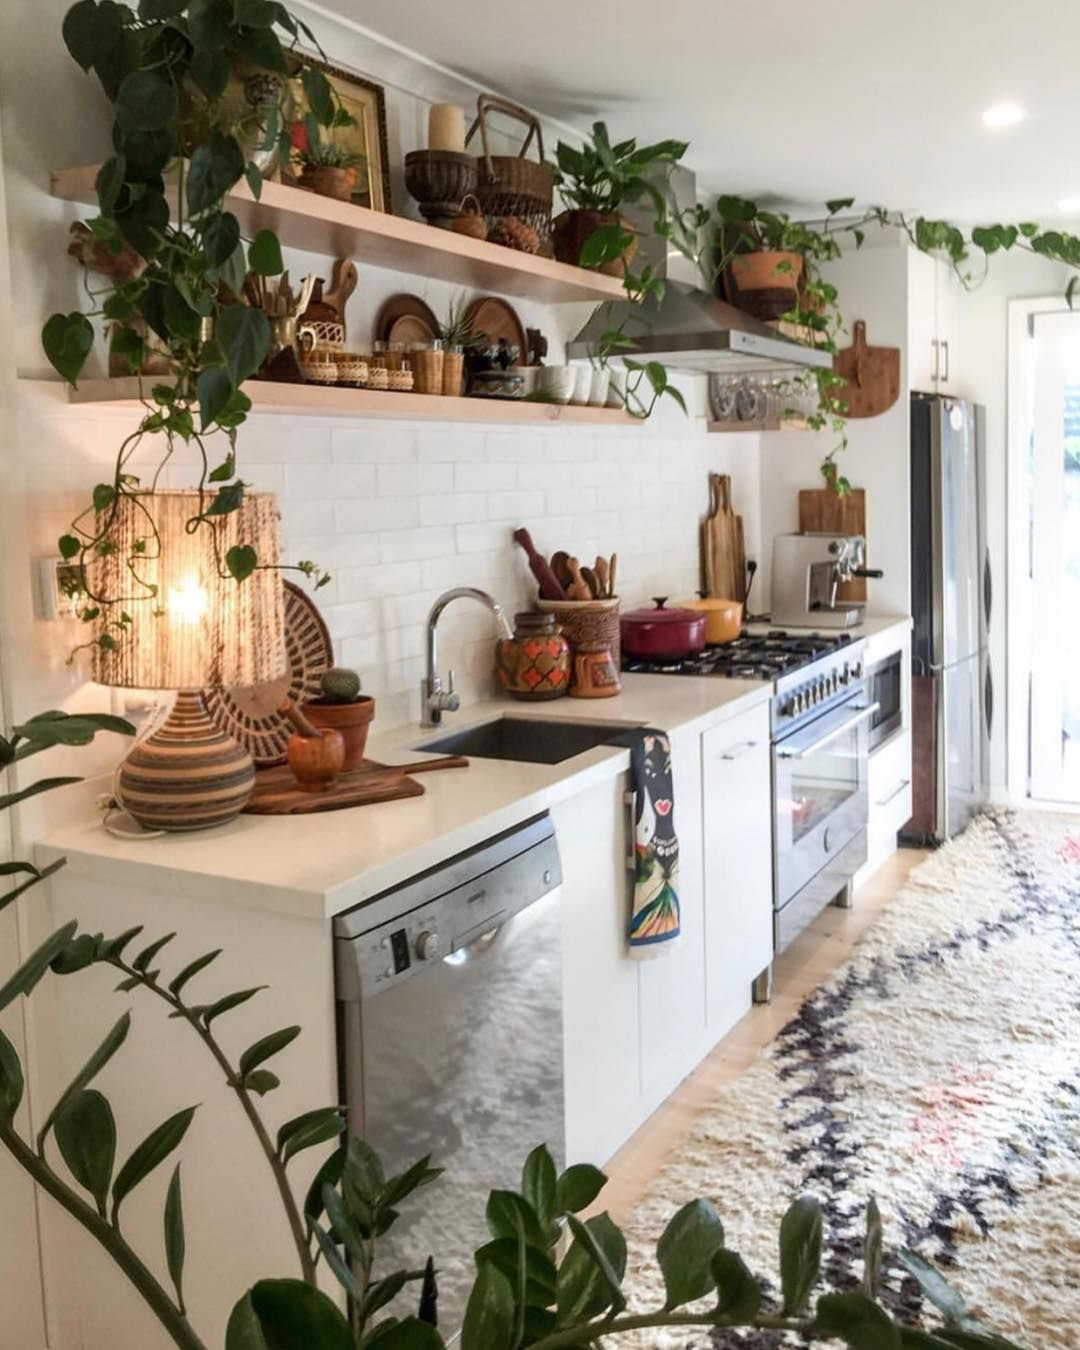 a plant a day on instagram kitchen dreaming helloplantlady image by zenbuddhamumma on boho chic interior design kitchen id=26200